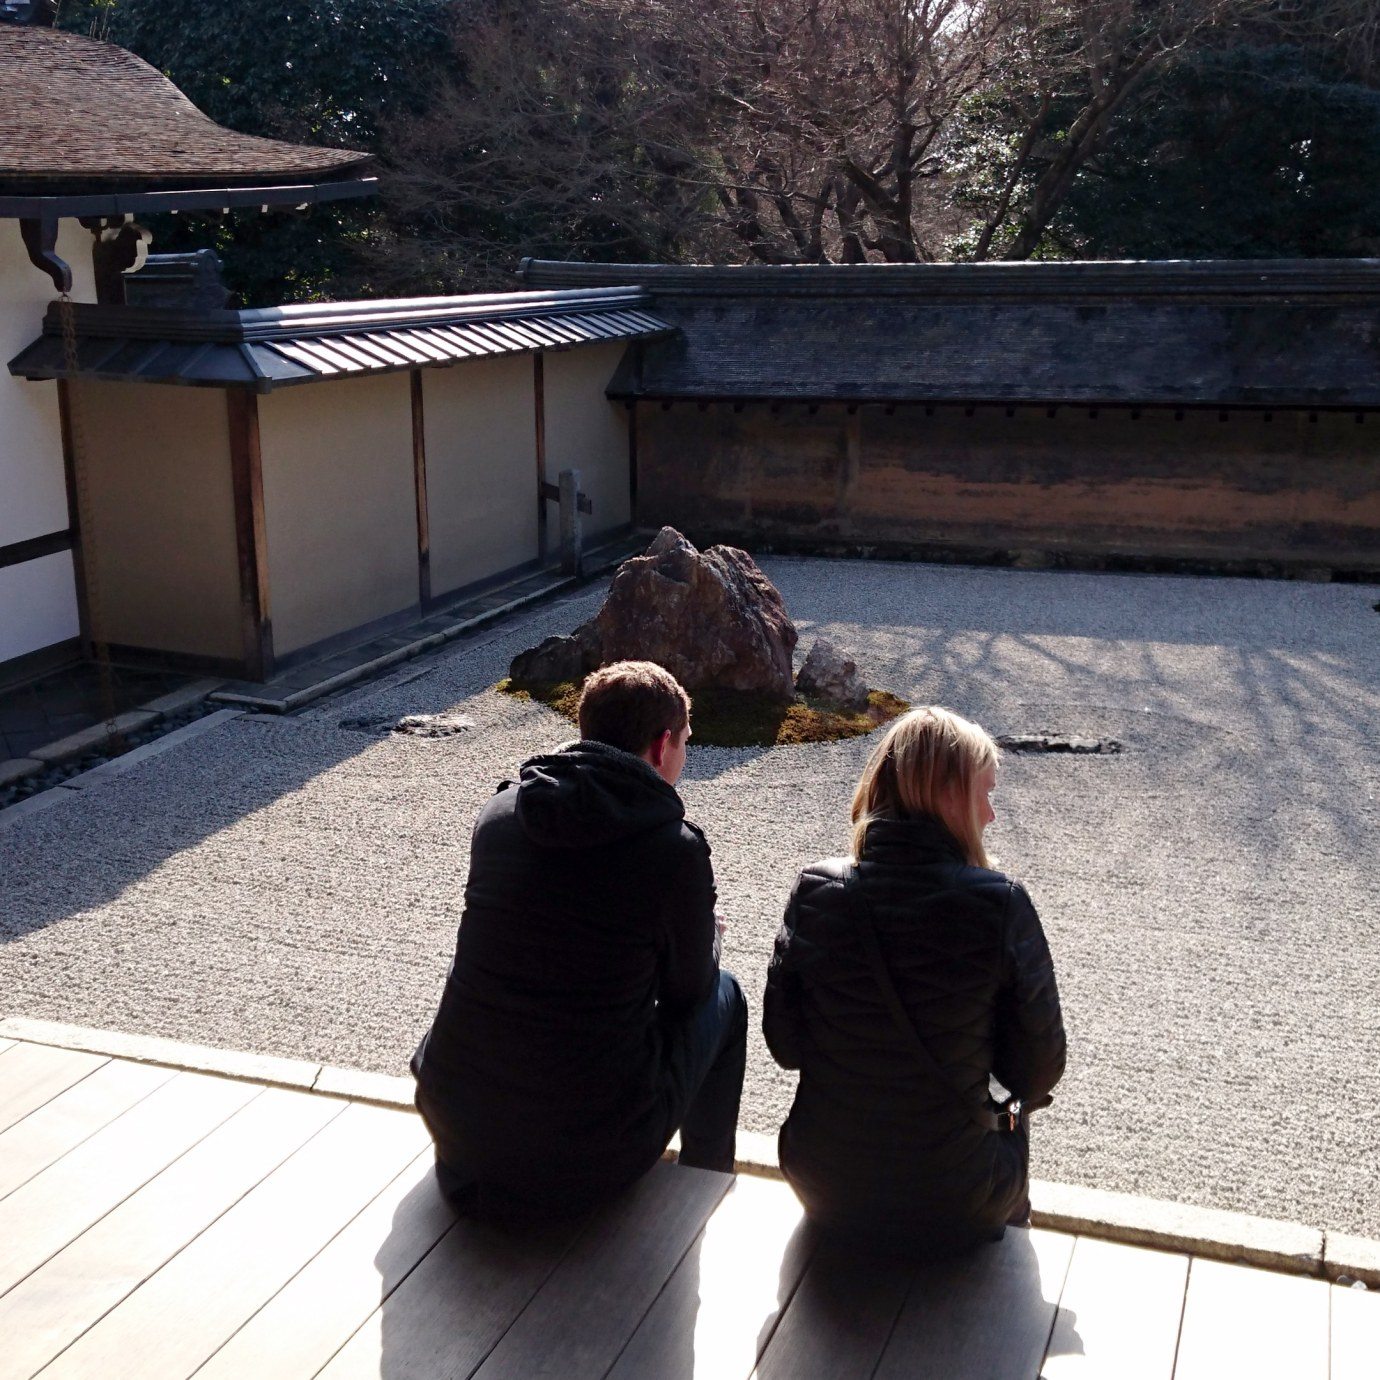 Sitting on the veranda at Ryoanji, Kyoto